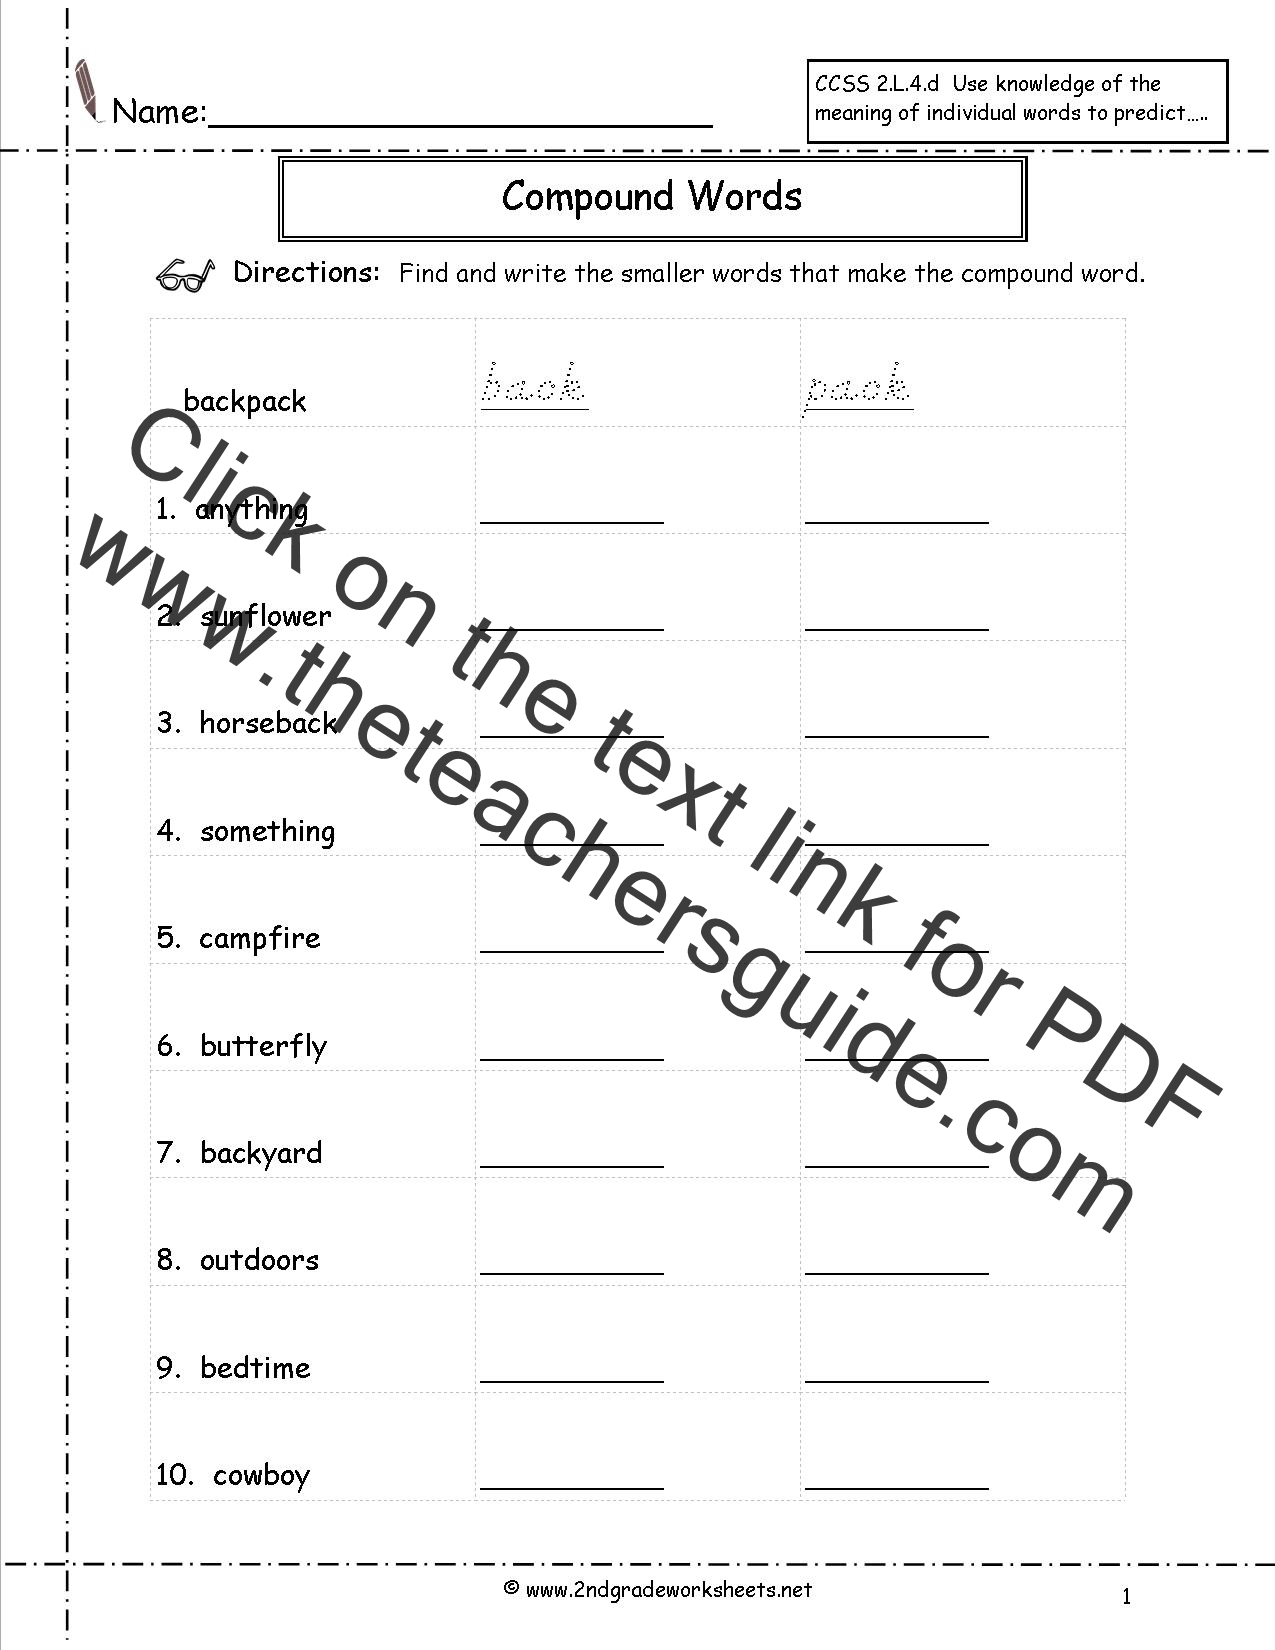 Worksheets Daily Grammar Practice Worksheets free languagegrammar worksheets and printouts compound words worksheets